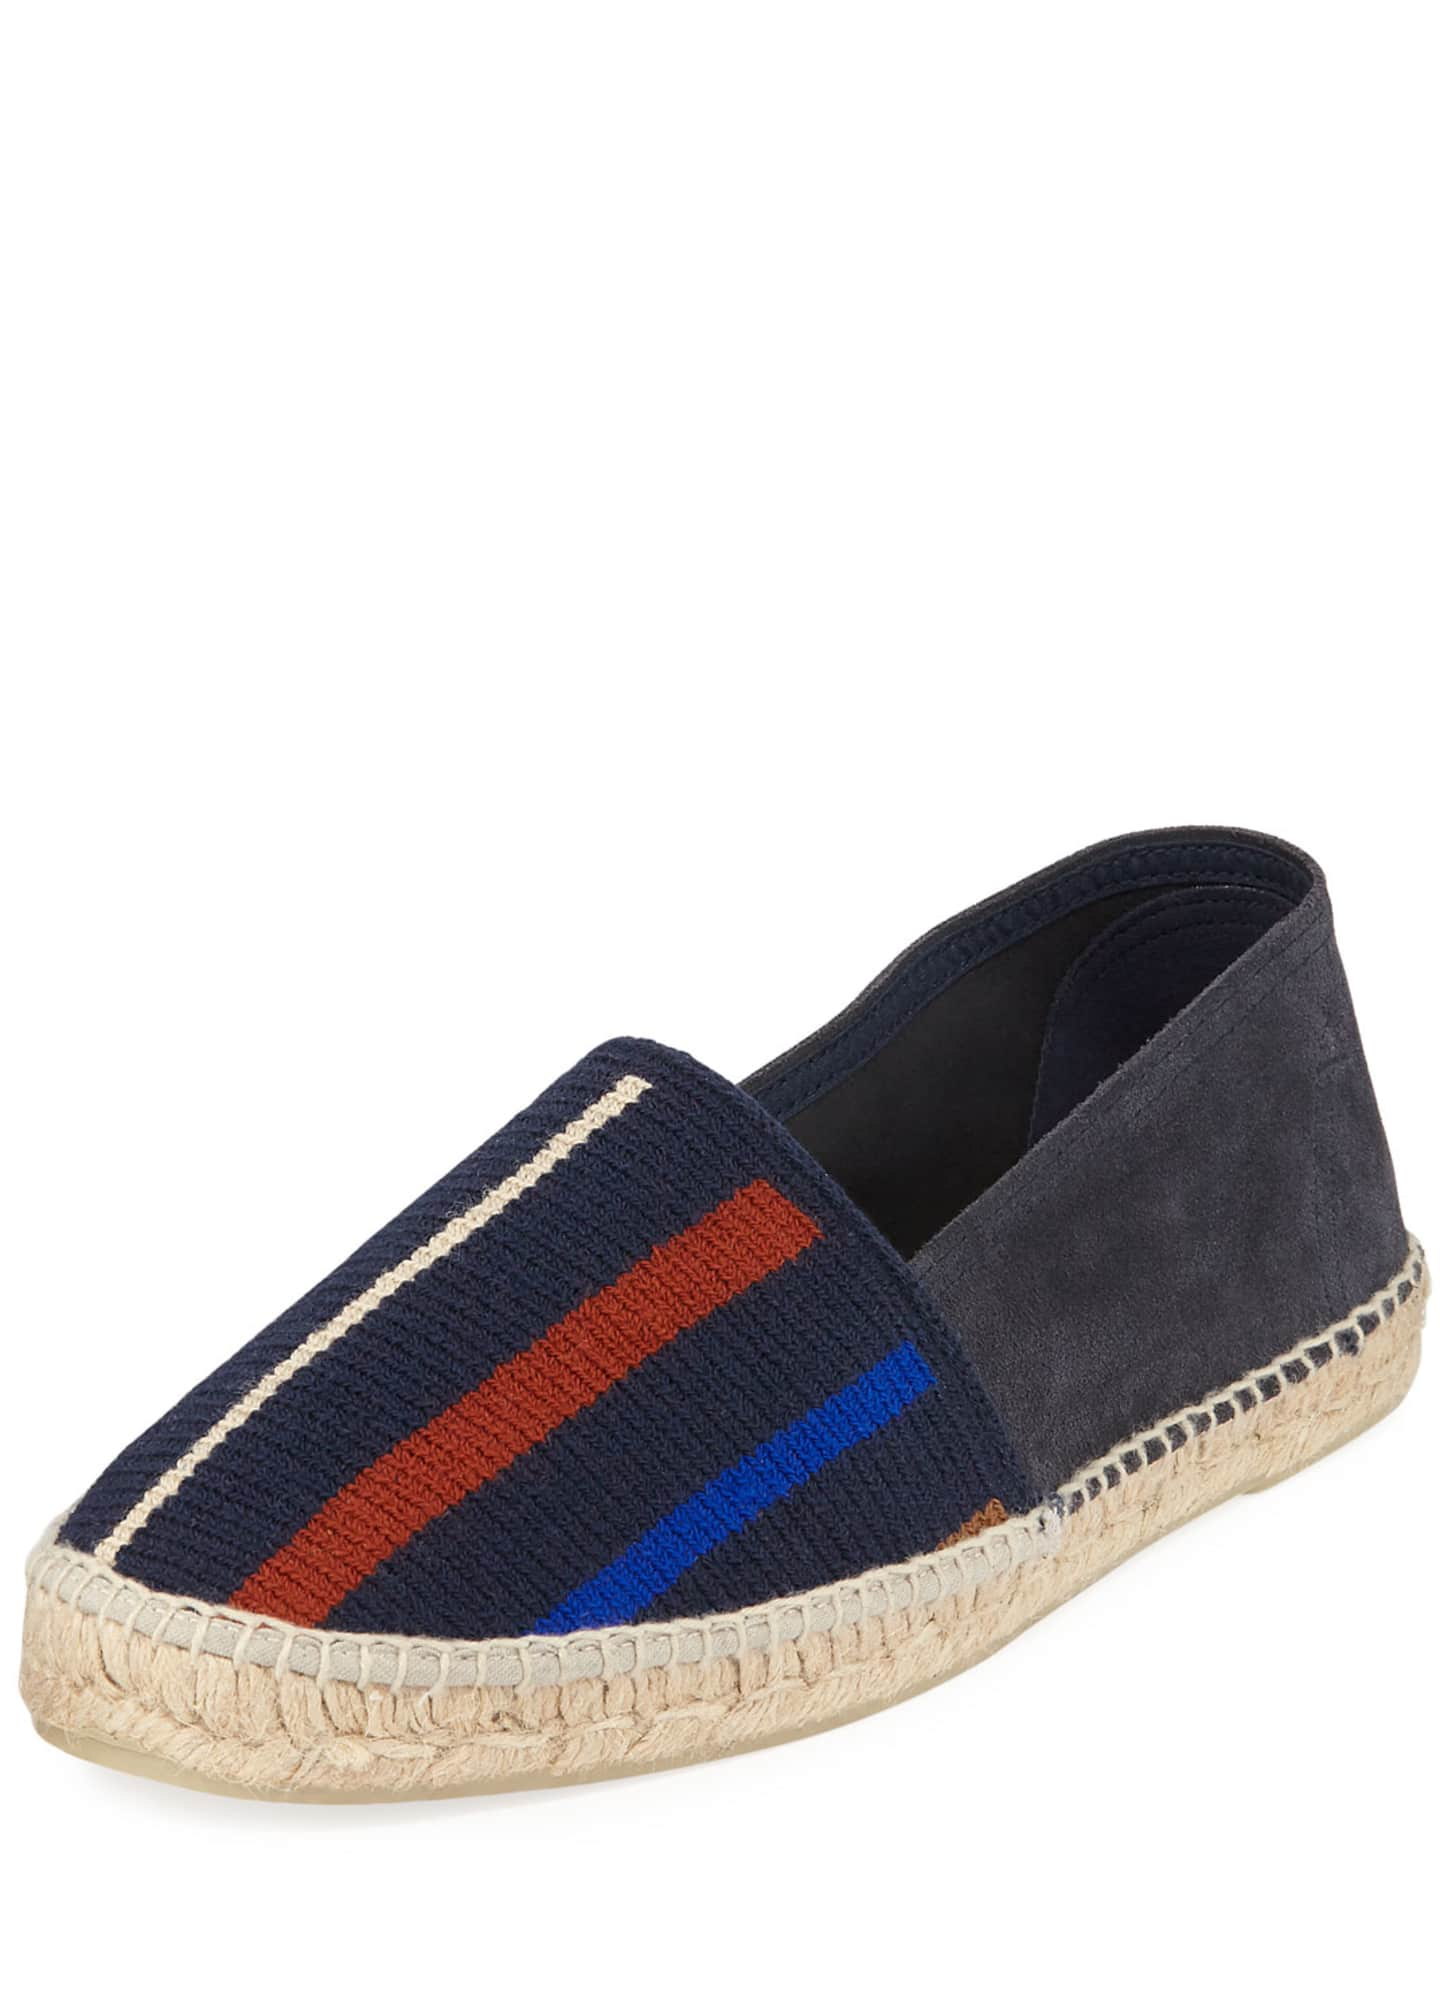 Guanabana Men's Knit-Front Espadrille